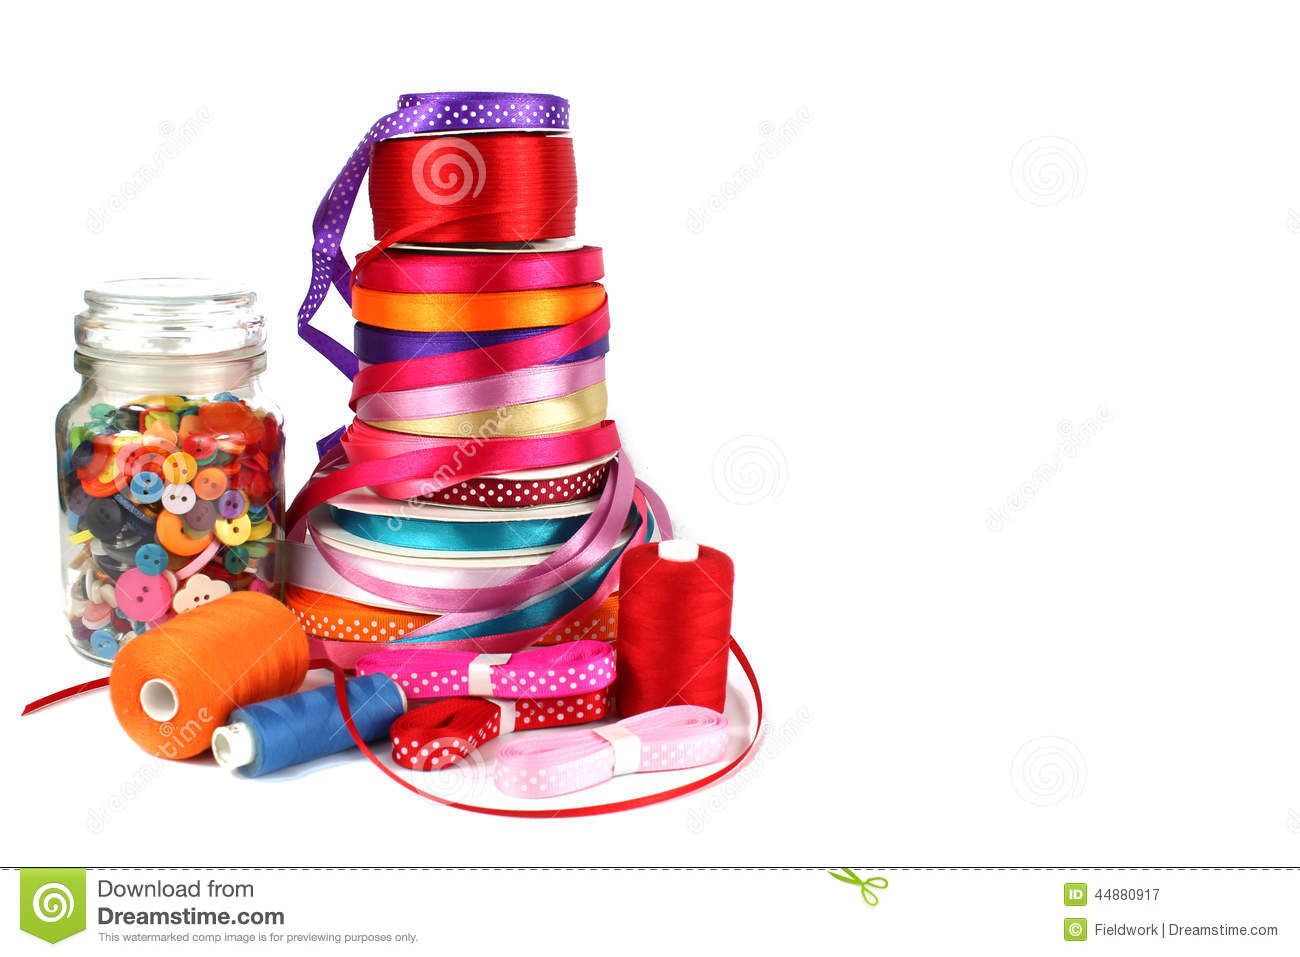 https://thumbs.dreamstime.com/z/colorful-ribbons-sewing-craft-haberdashery-items-white-background-copy-space-44880917.jpg